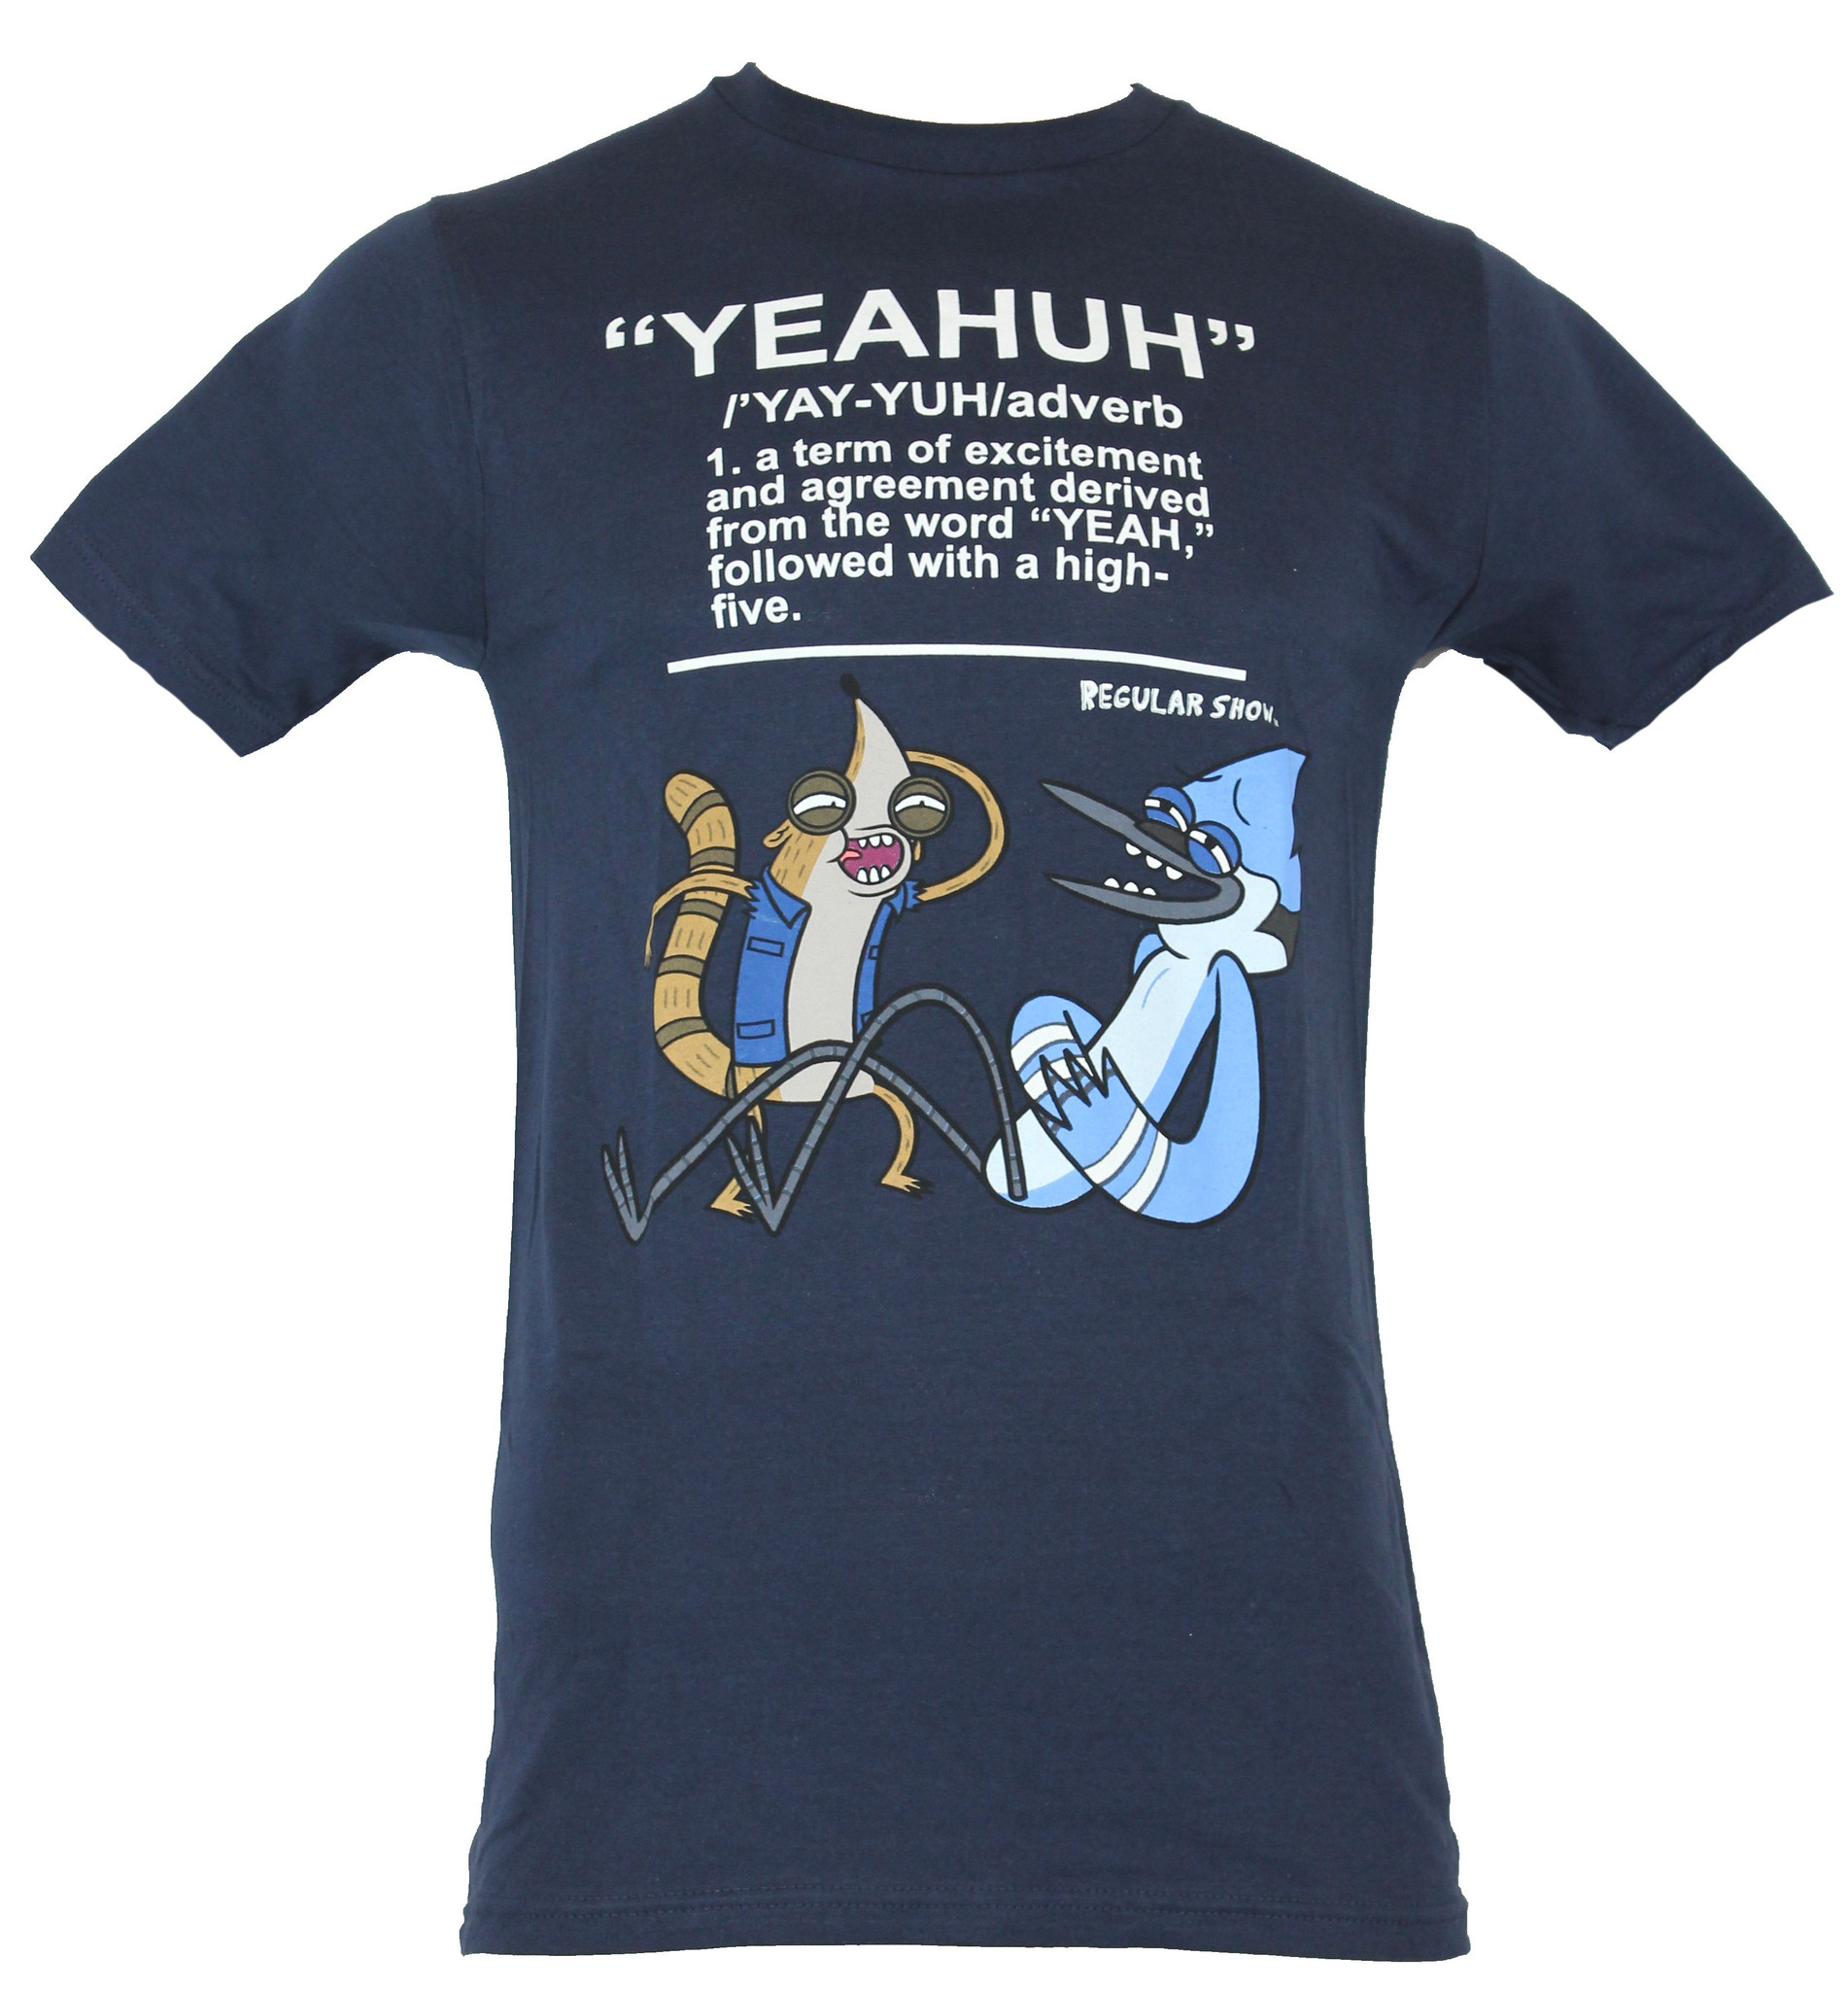 """Regular Show Mens T-Shirt  - """"YEAHUH"""" adverb Defined Image"""